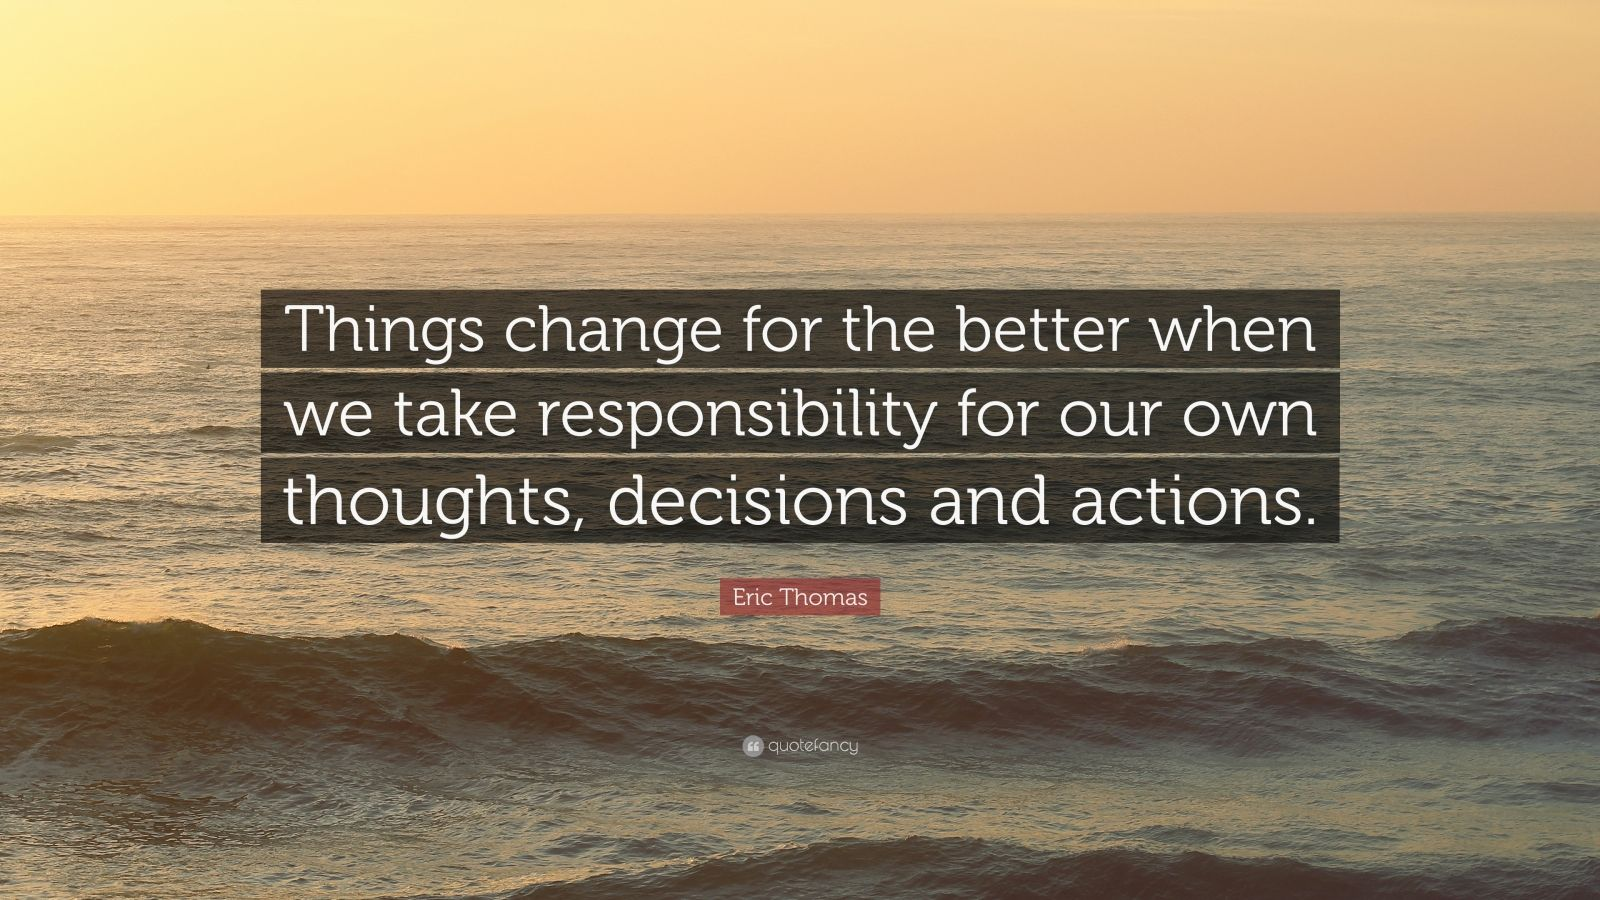 """Eric Thomas Quote: """"Things change for the better when we take responsibility for our own thoughts, decisions and actions."""""""